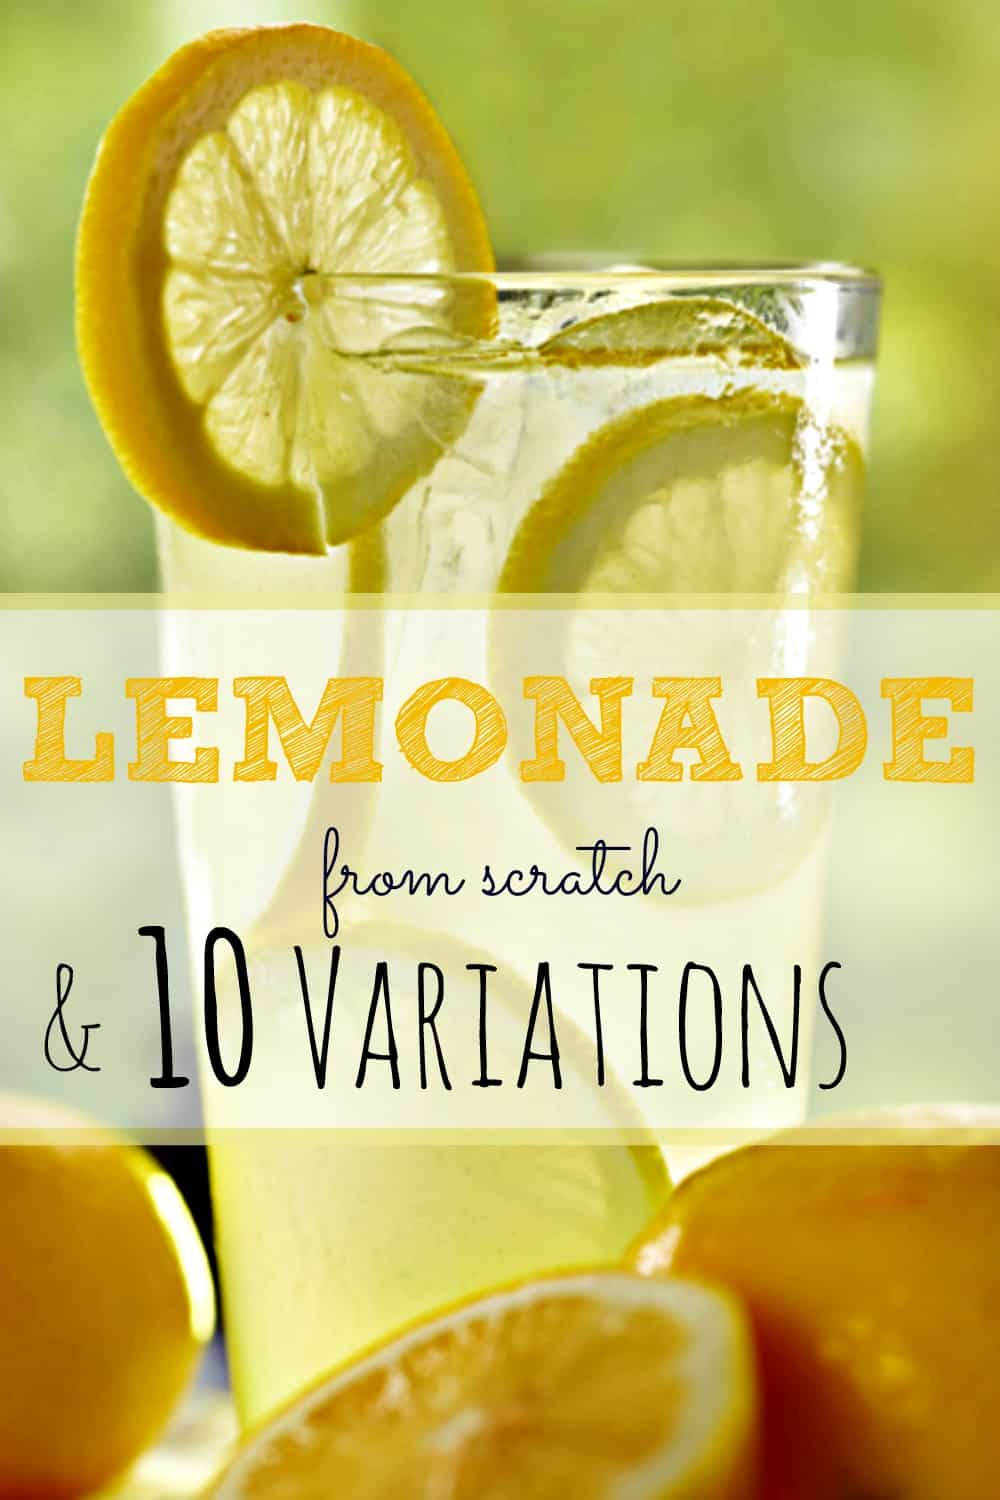 I can't decide which I like best - the homemade lemonade recipe or the variations on it. So much yum!